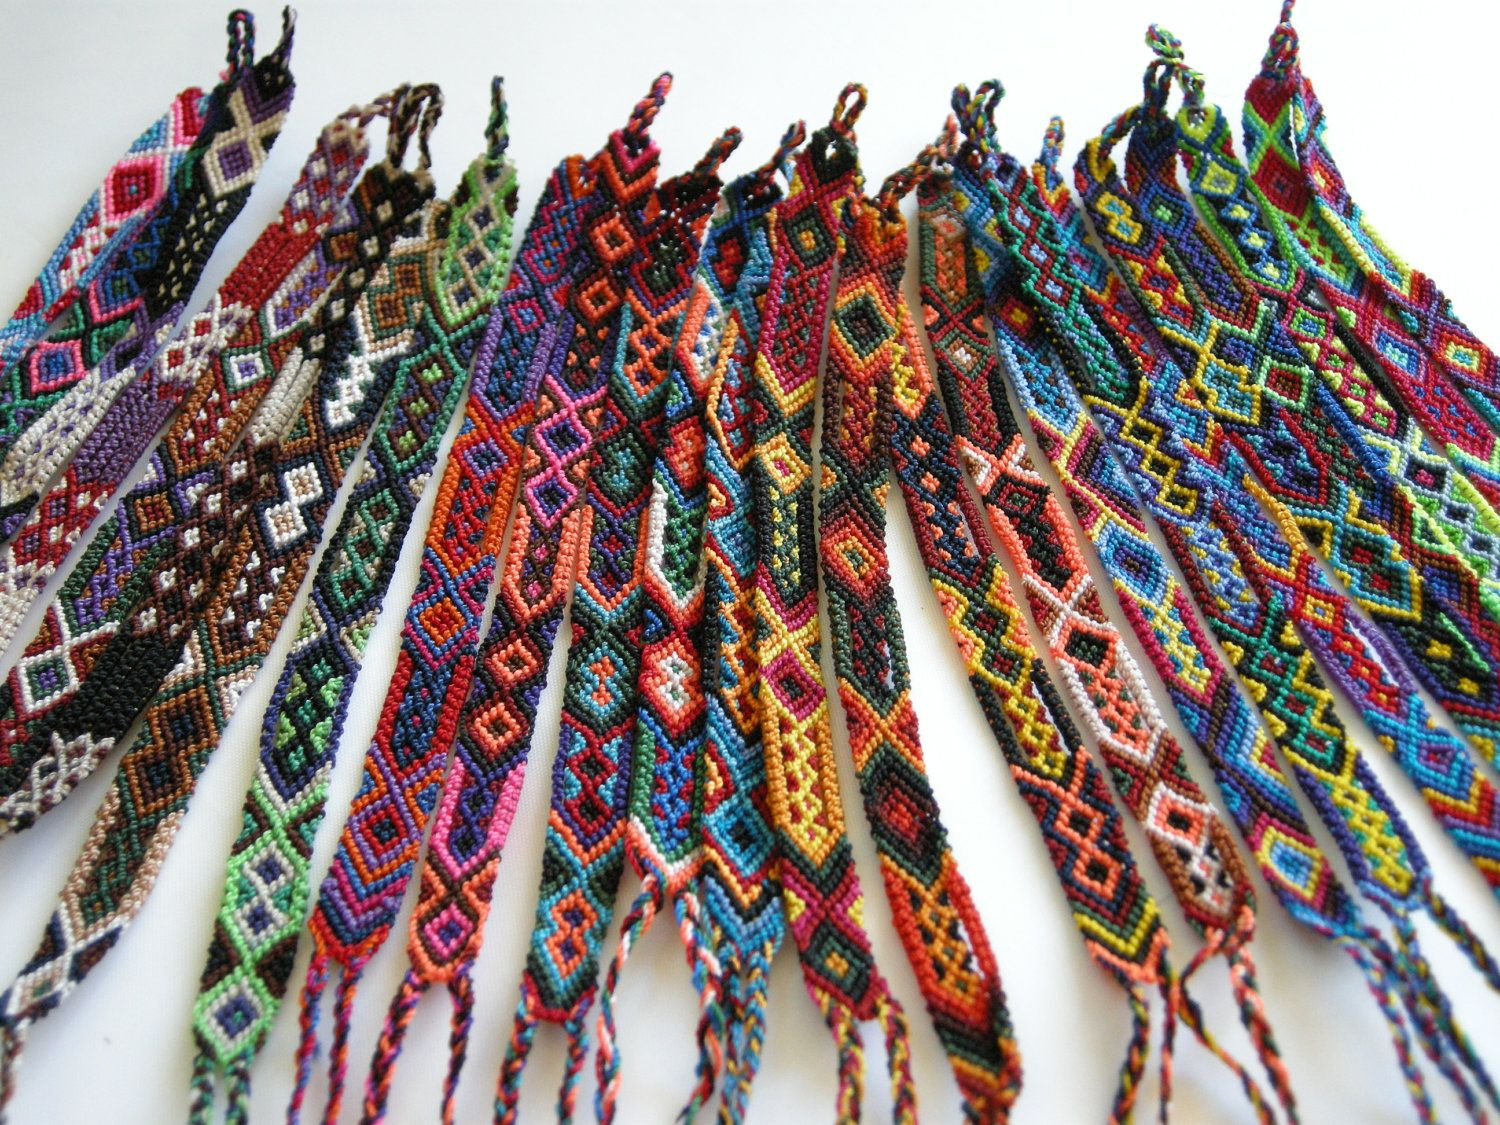 9ffe0ccb91fd1 Wholesale Lot of Small Friendship Bracelets (25 bracelets). $80.00 ...